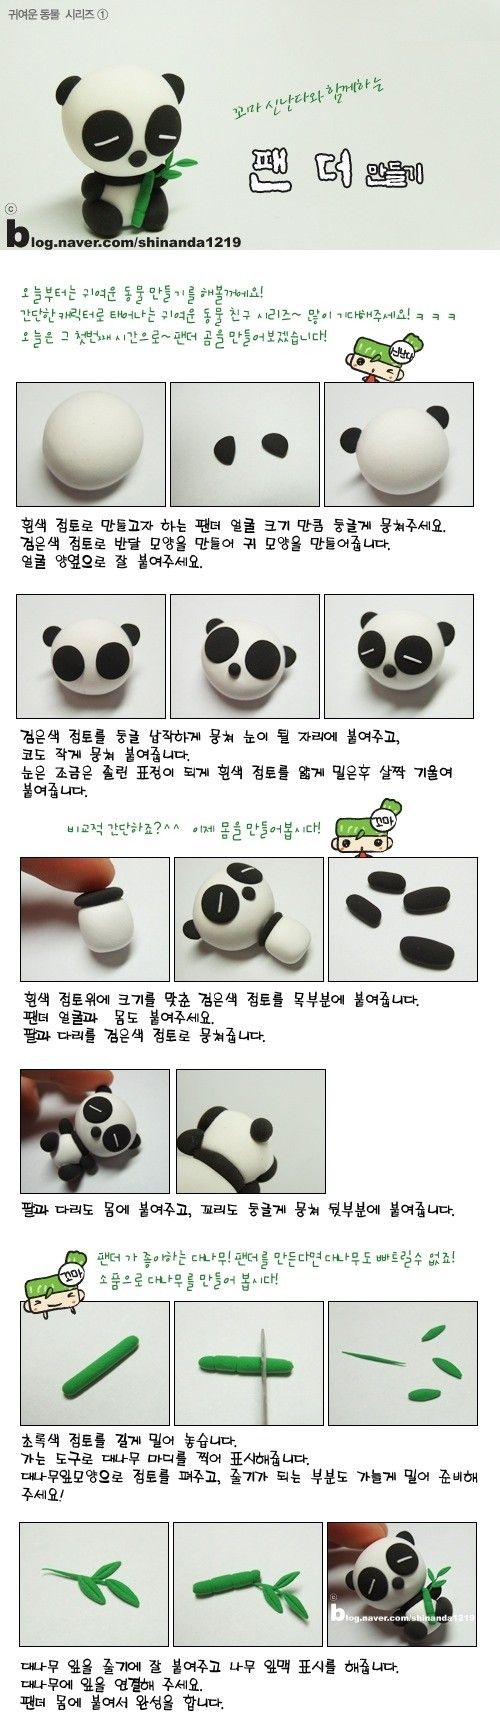 Panda and bamboo figurine tutorial